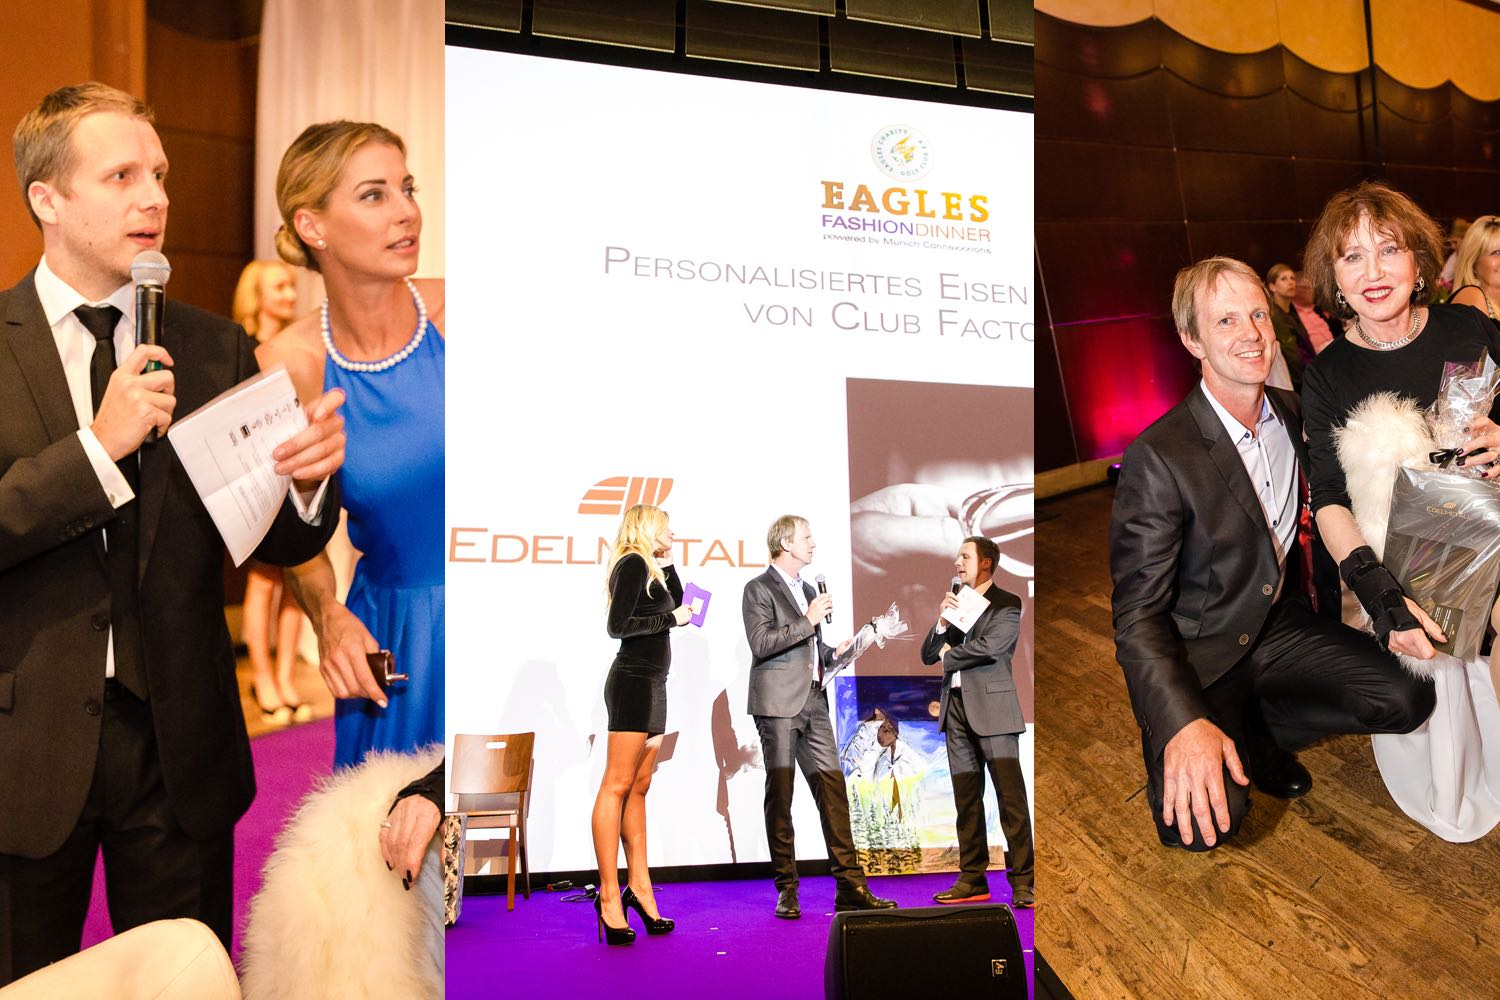 MUNICH_CONNEXXXions_EAGLES_Fashion_Dinner_Edelmetall_Clubfactory